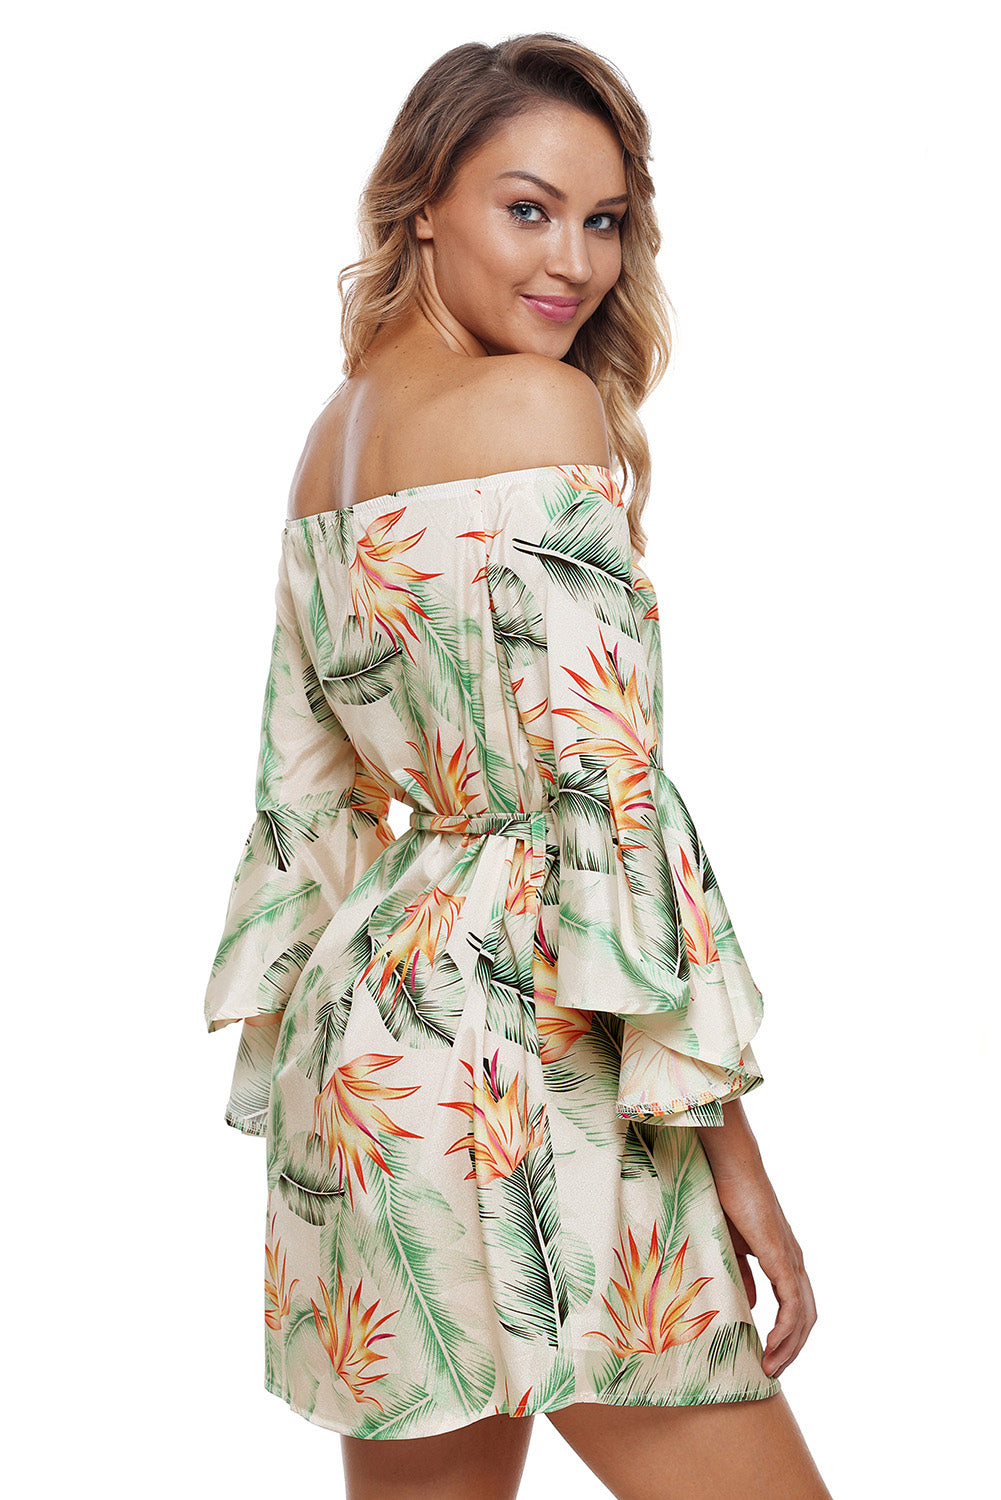 Flared Sleeves Tropical Leaf and Flower Print Off Shoulder Her Summer Dress